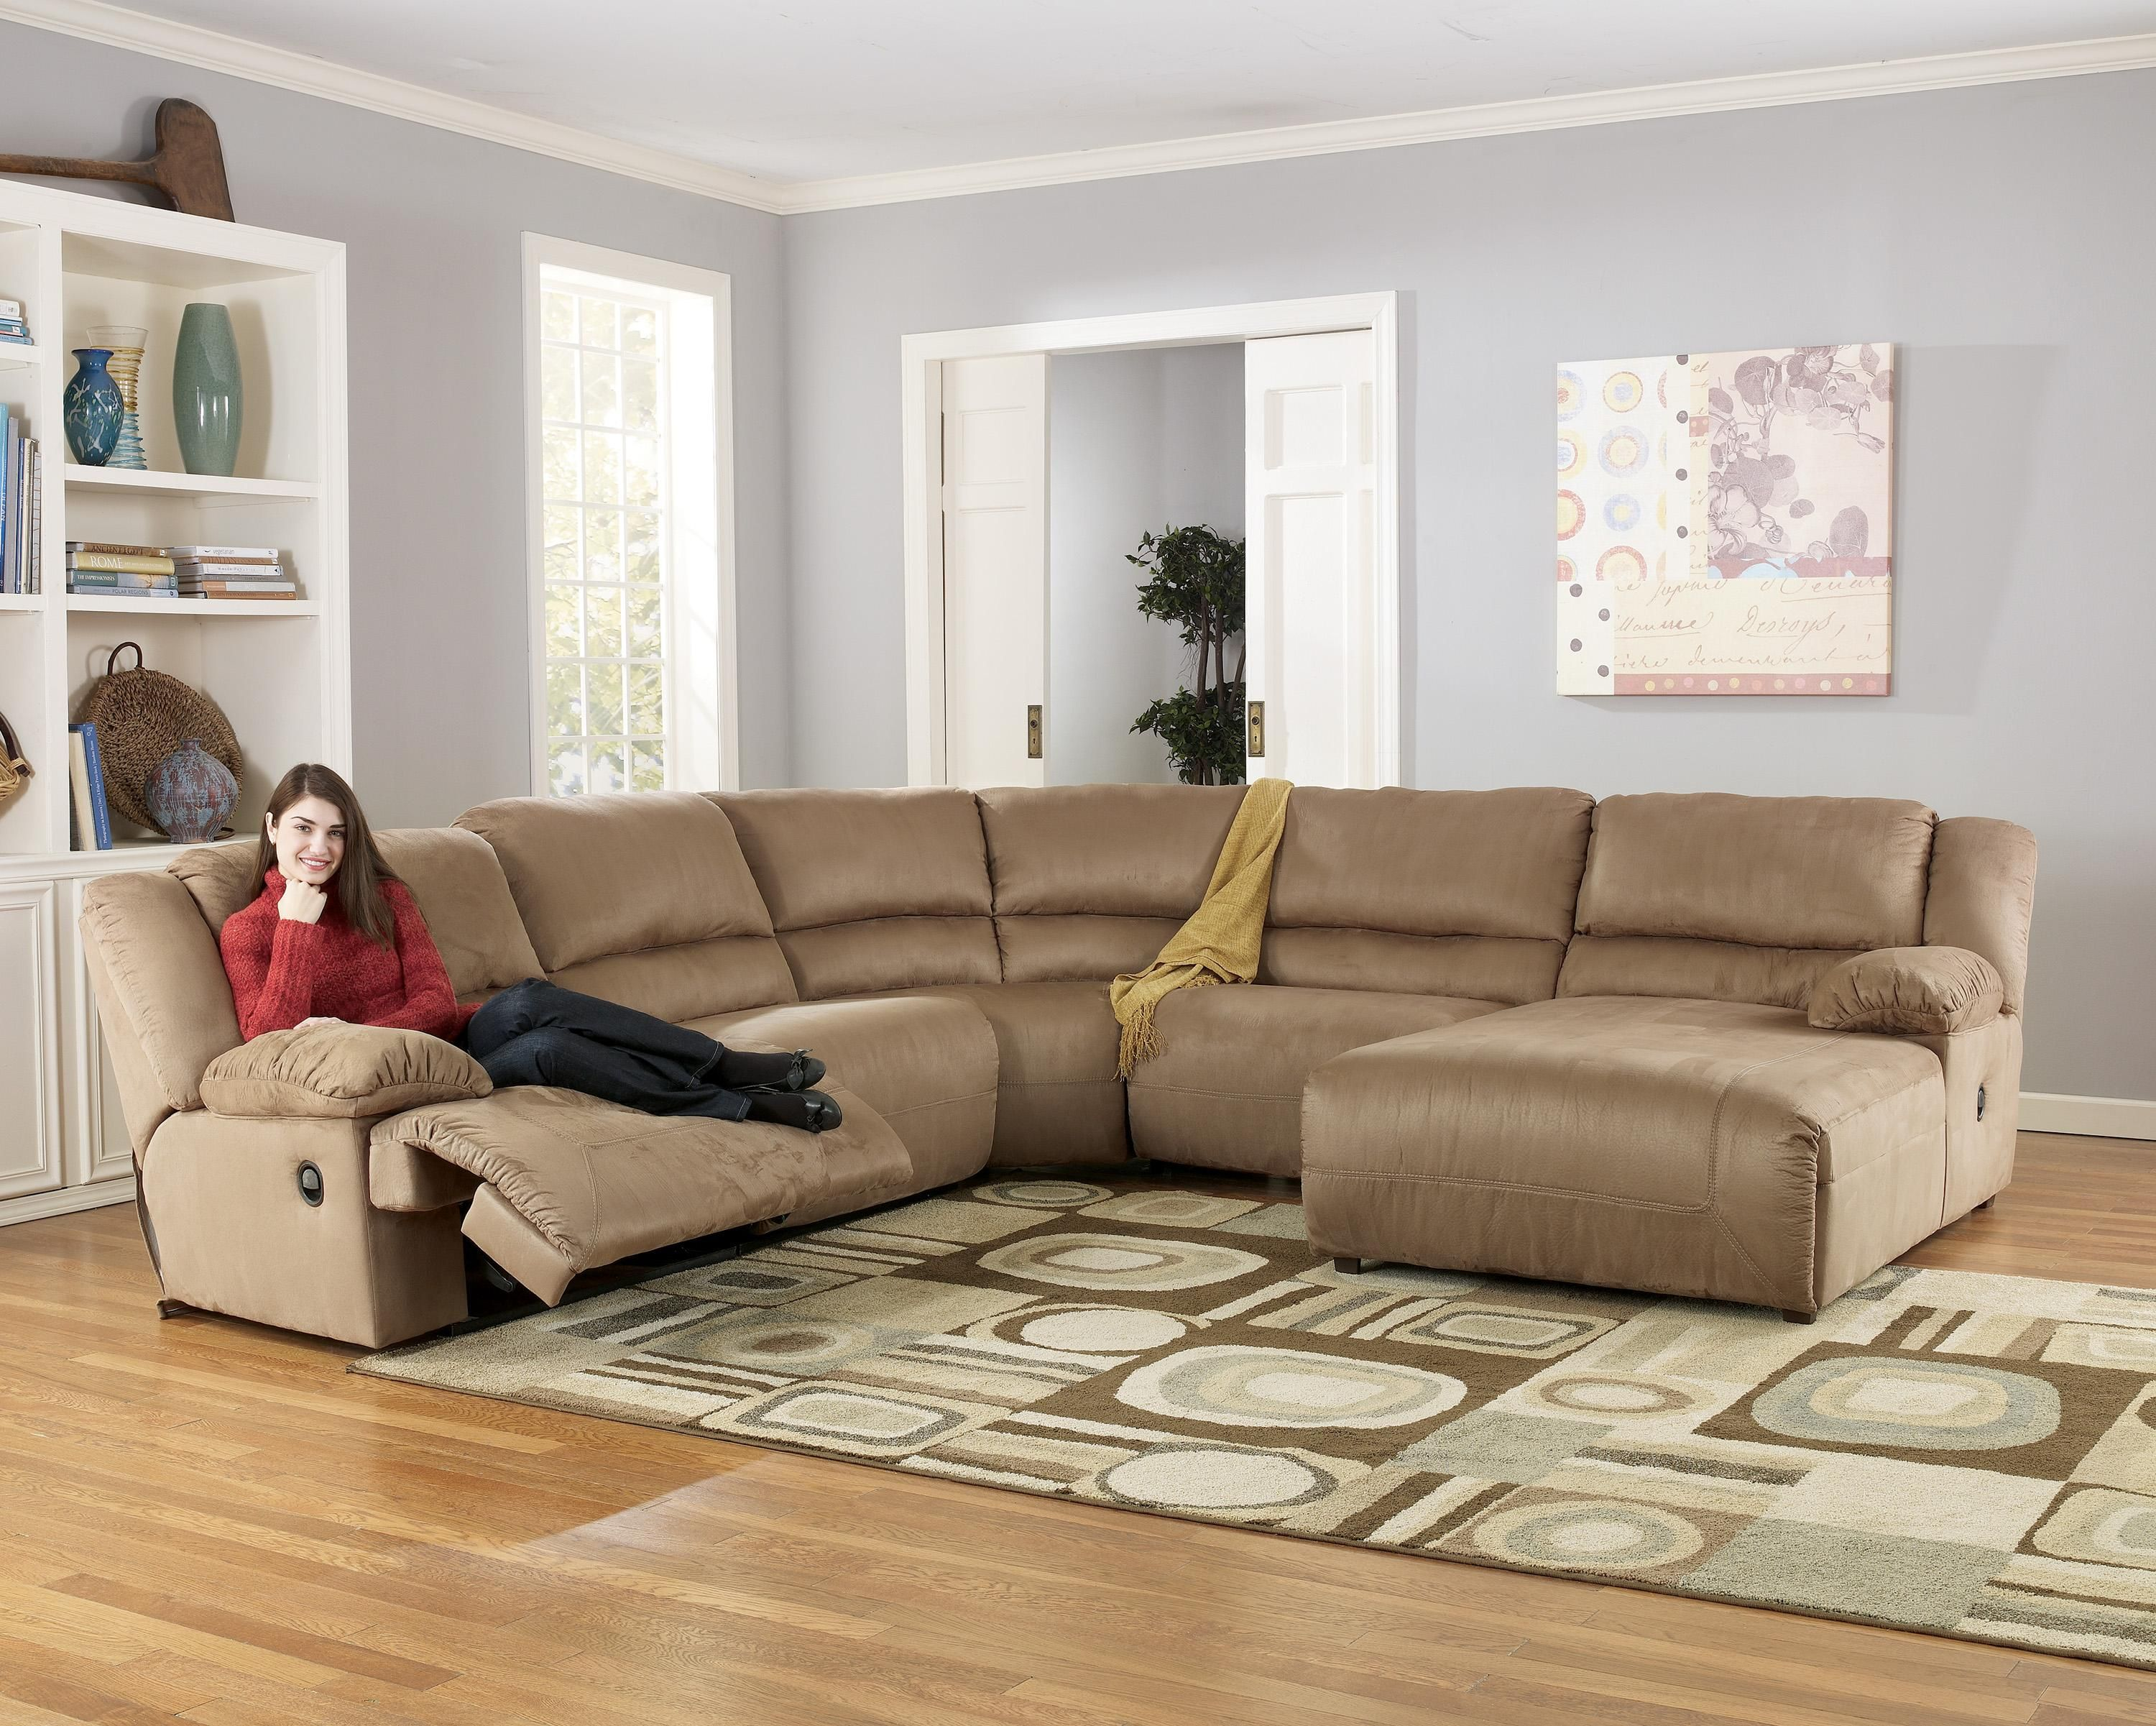 Marlo Furniture Rockville 725 Pike Md 20852 301 738 9000 Www Marlofurniture Is A Dc Area Chain